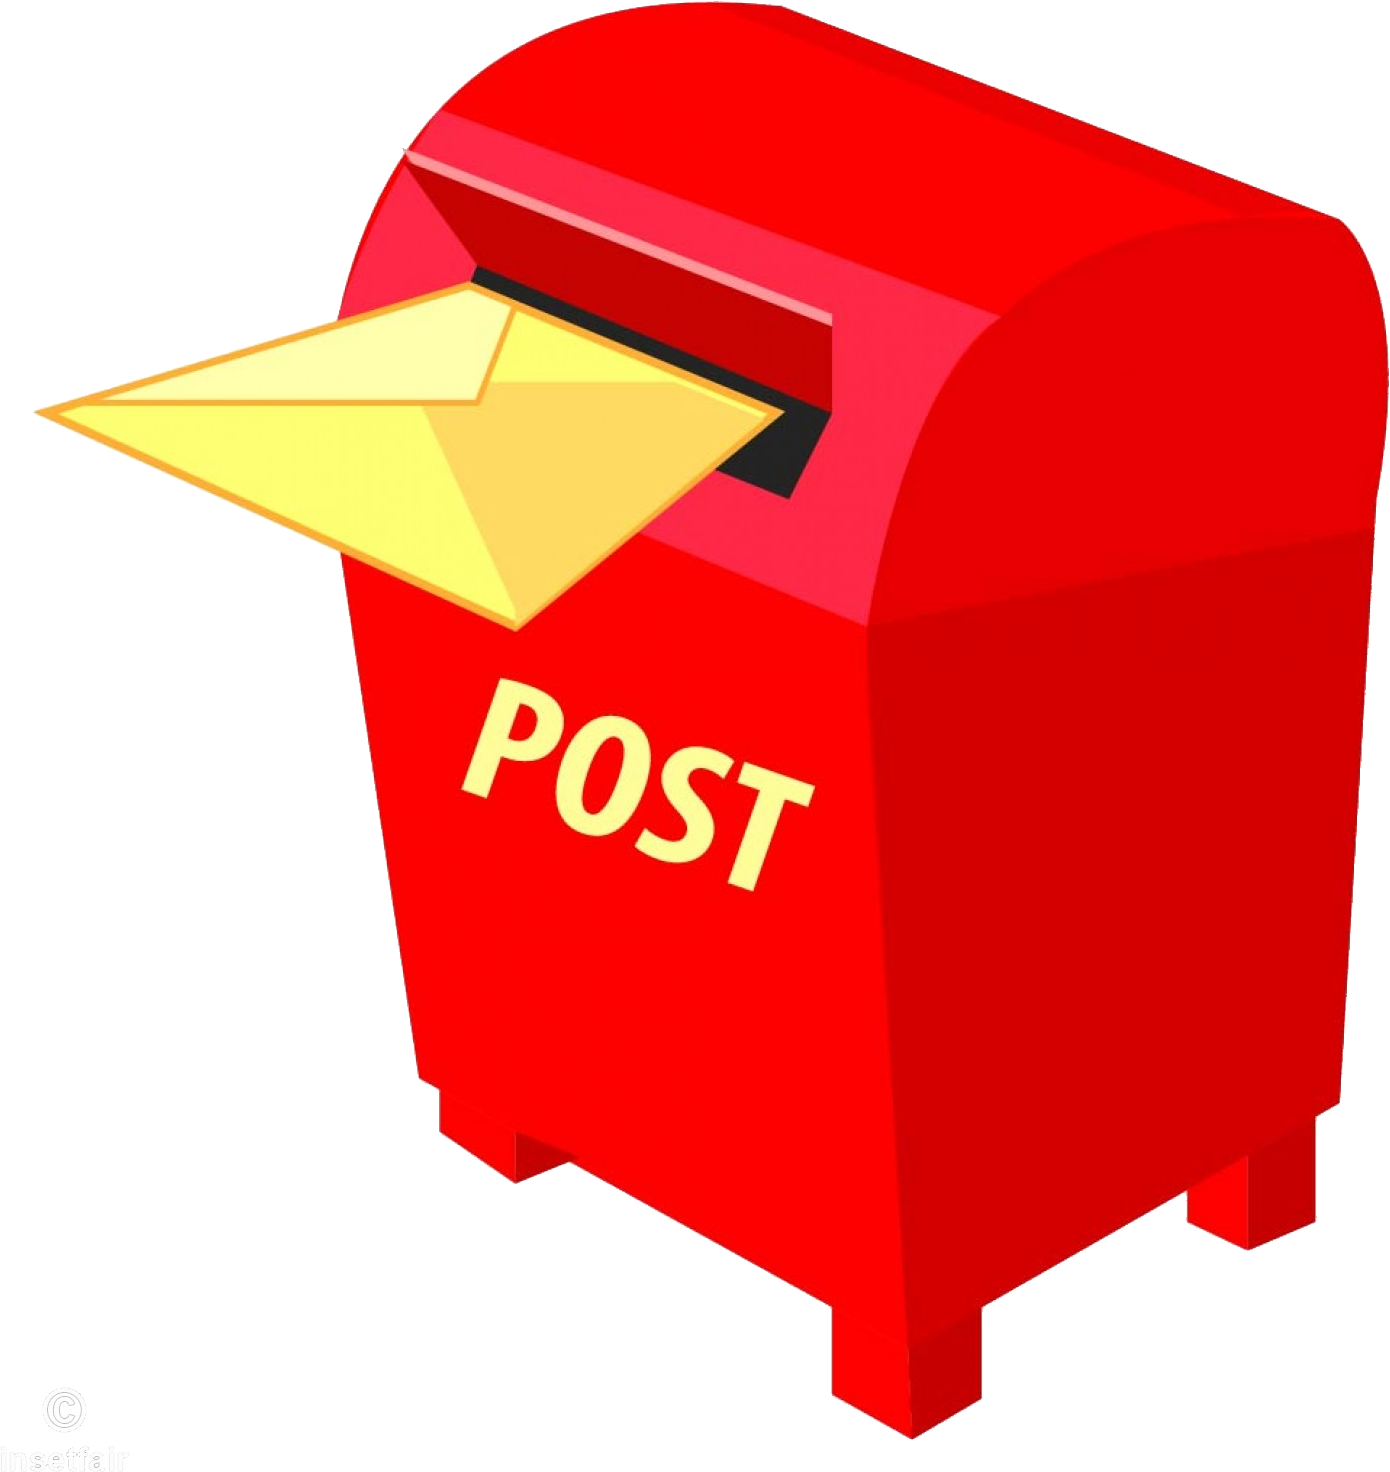 Postbox png images free. Mailbox clipart mailbox post office